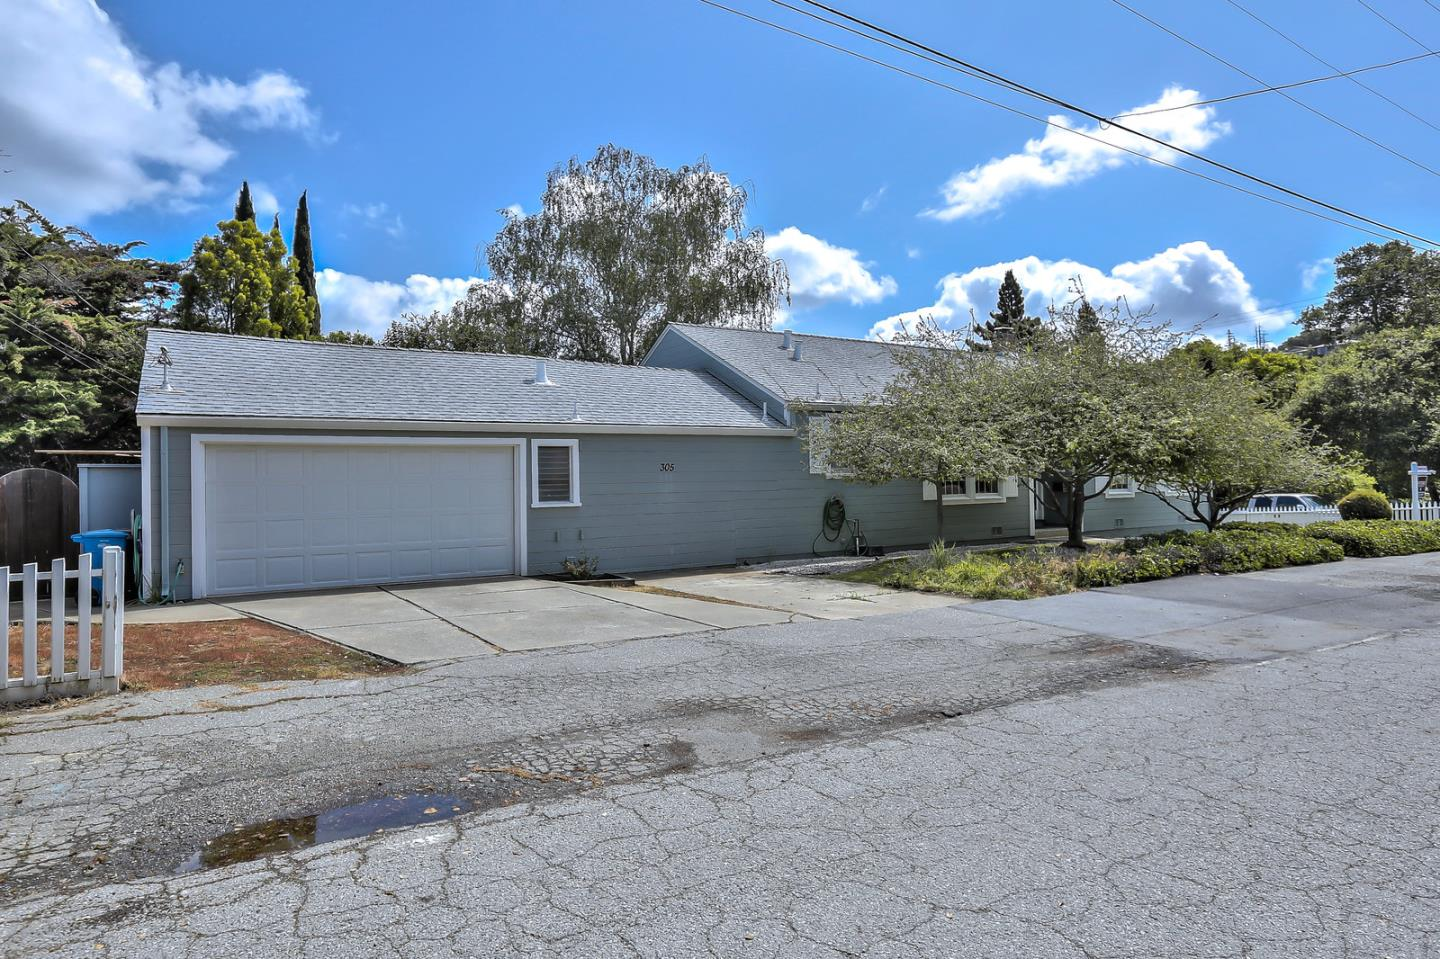 305 Arundel Road San Carlos, CA 94070 - MLS #: ML81700634